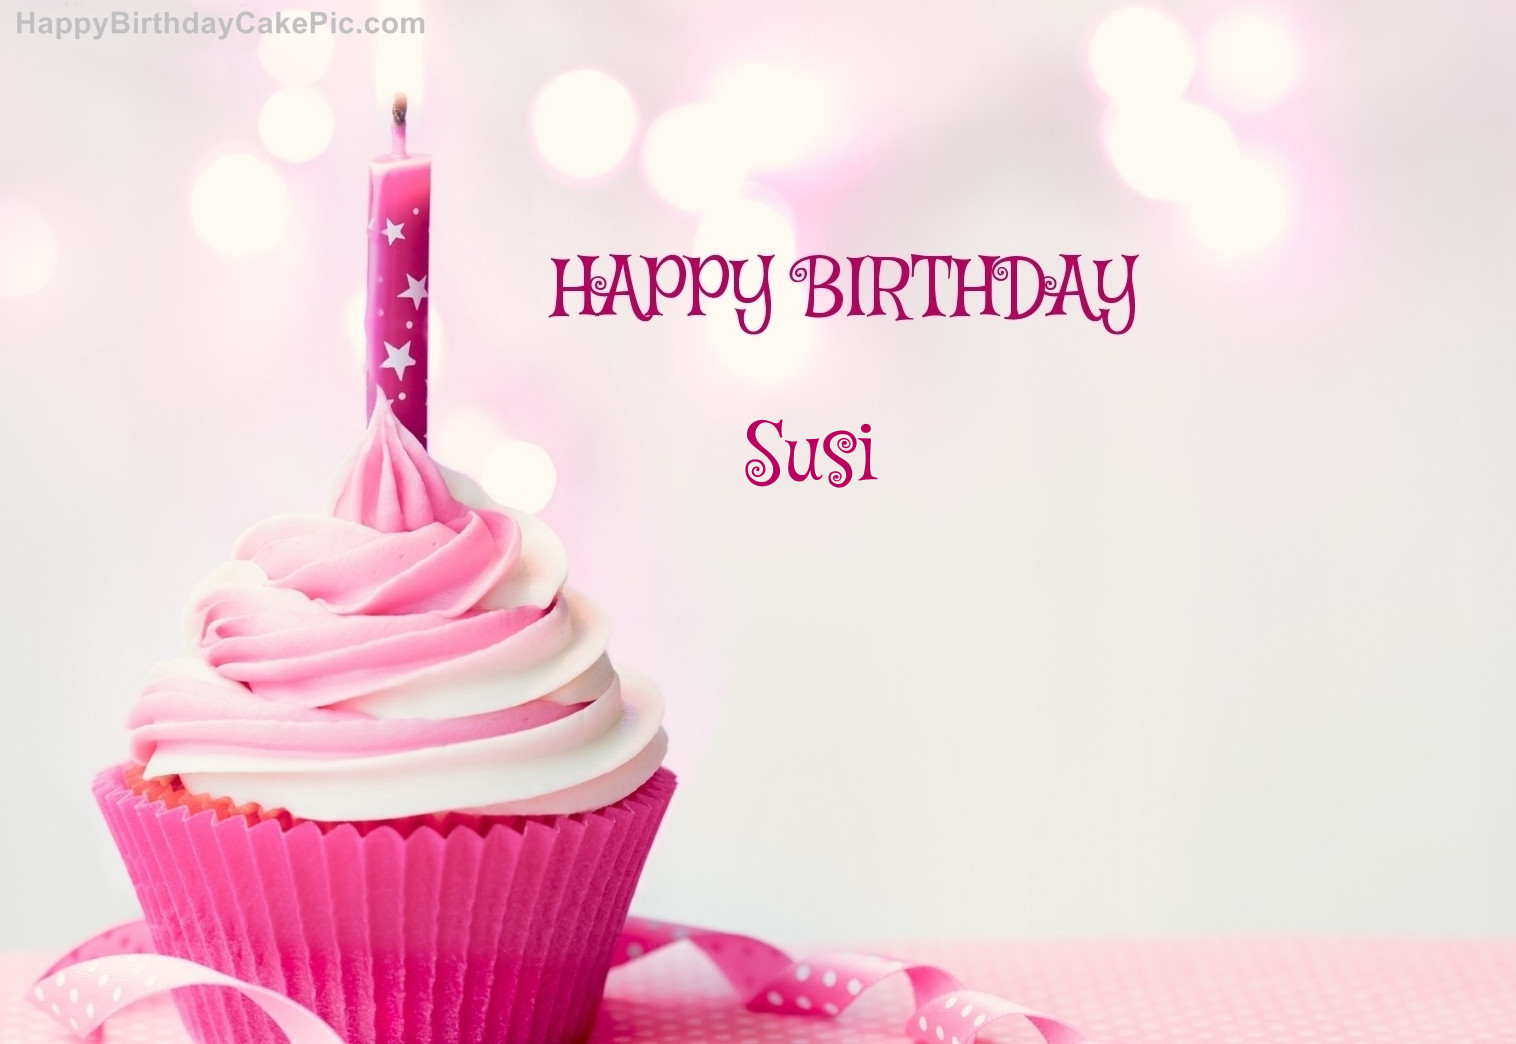 Happy Birthday Cupcake Candle Pink Cake For Susi